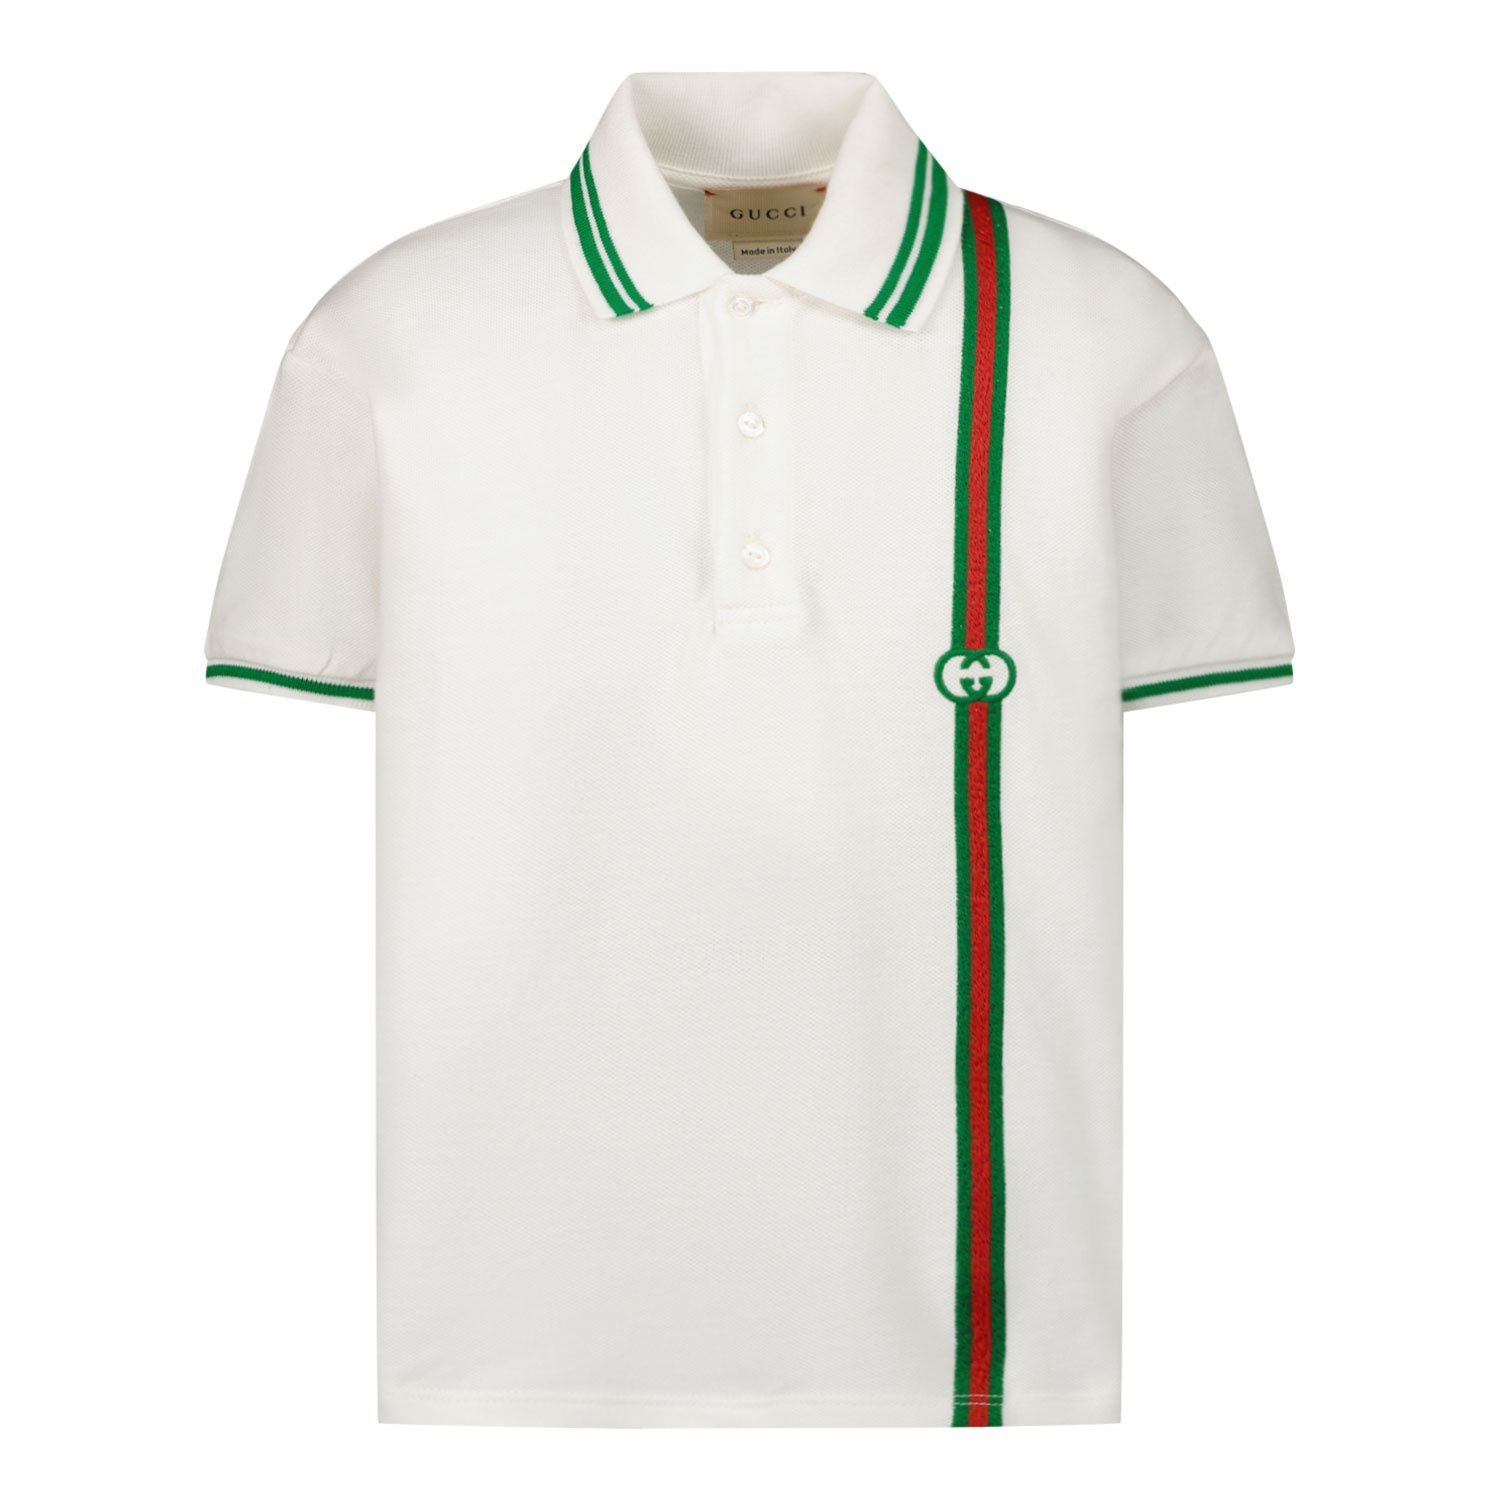 Afbeelding van Gucci 638455 baby polo wit